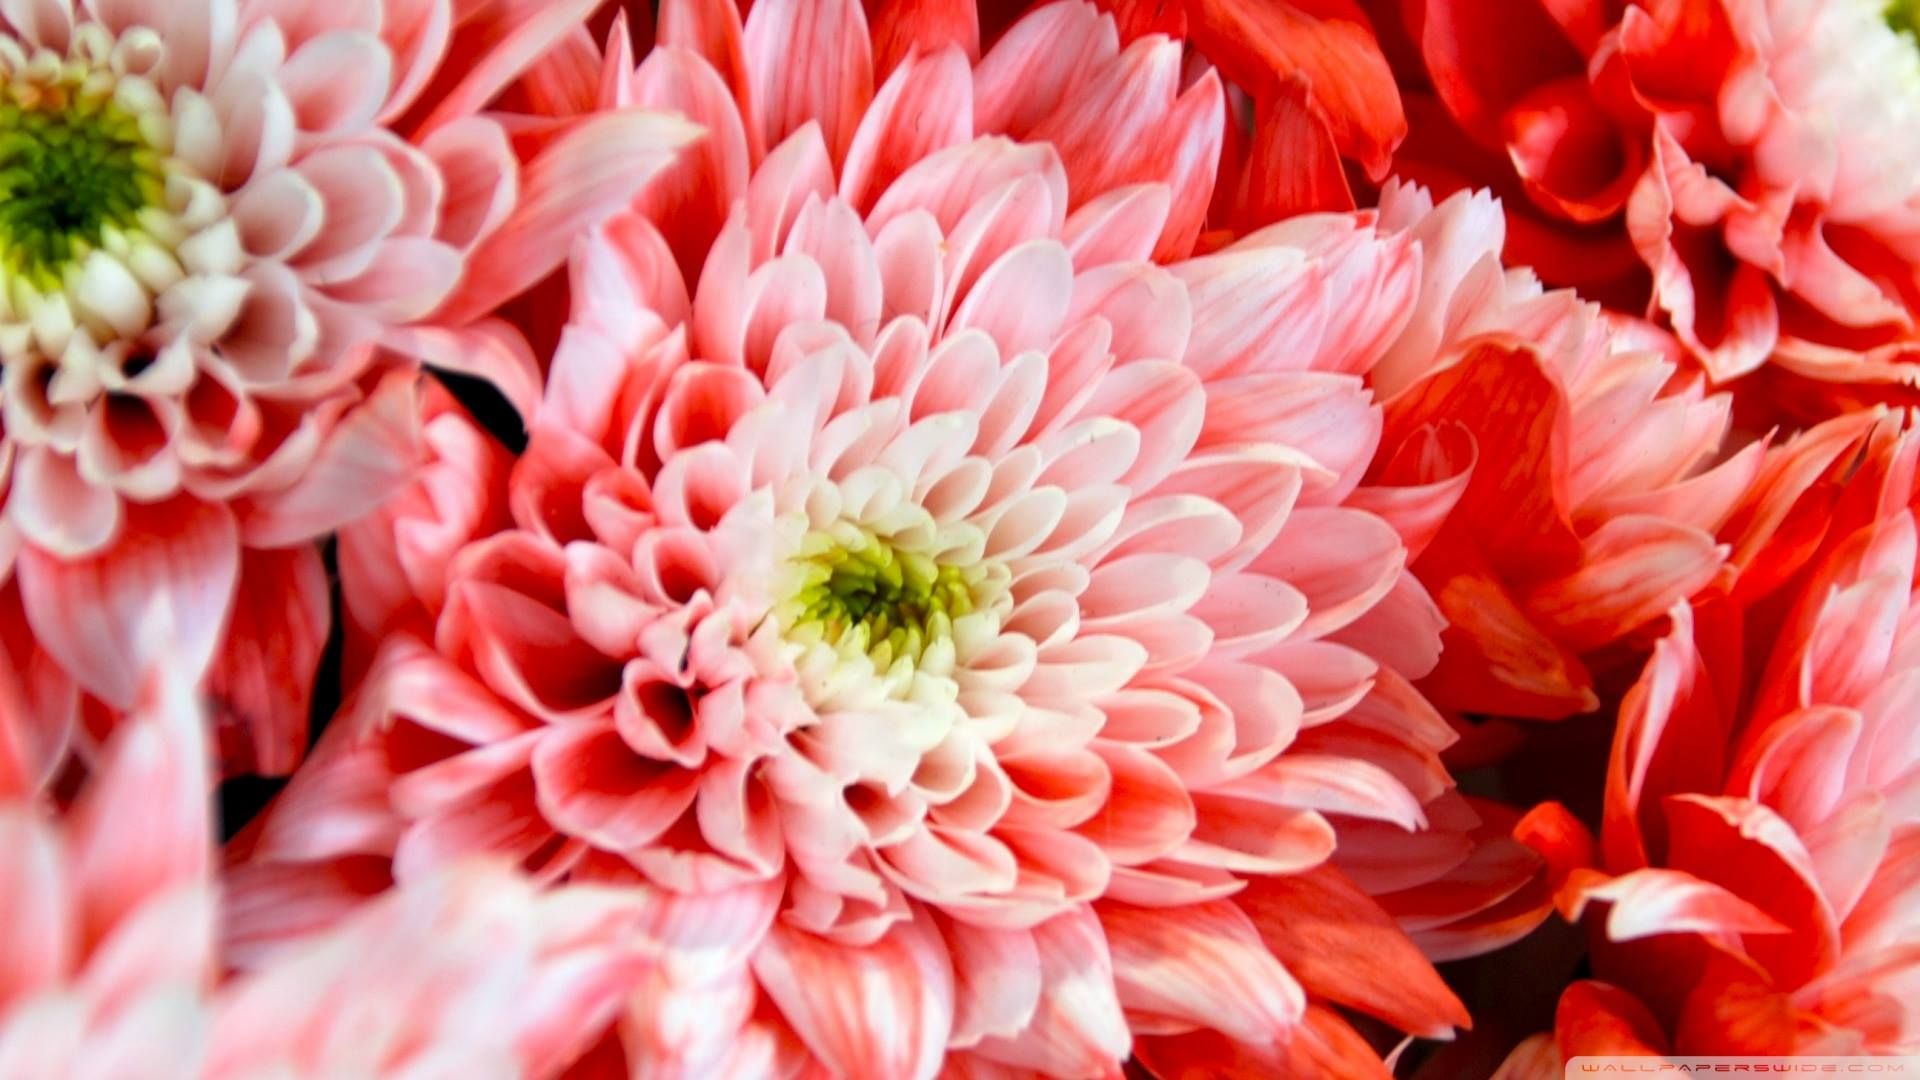 November S Birth Flower Is The Chrysanthemum Which Means Love And Cheerfulness Who Has A Birthday In Novem August Birth Flower Birth Flowers Flower Wallpaper